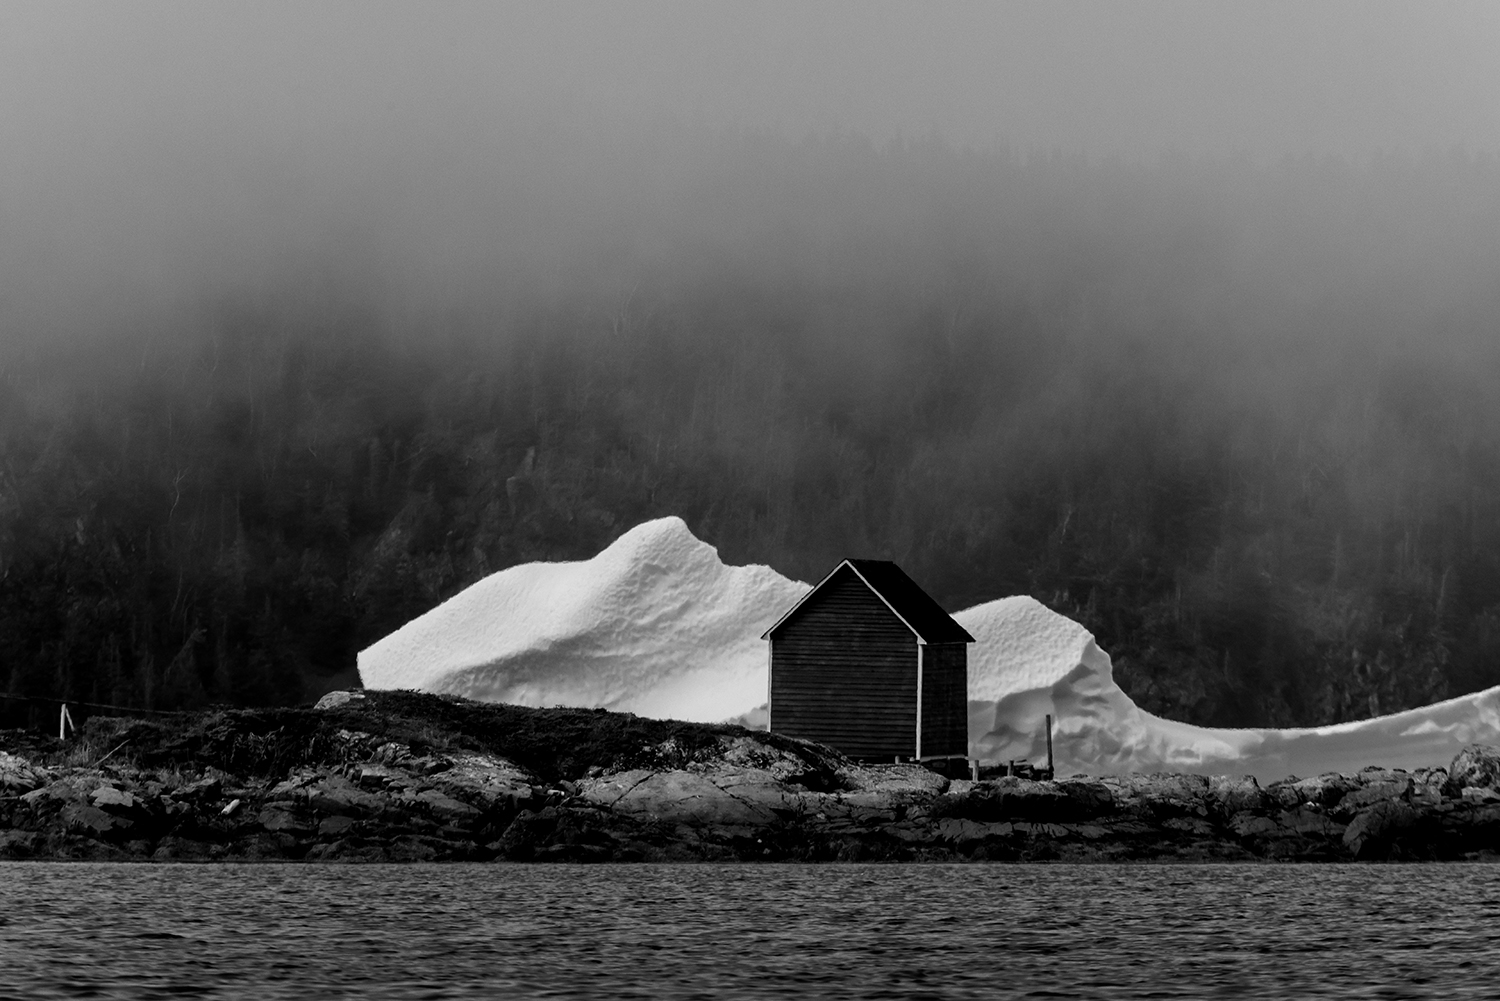 Newfoundland, CanadaImage No: 19-008082-bwClick HERE to Add to Cart